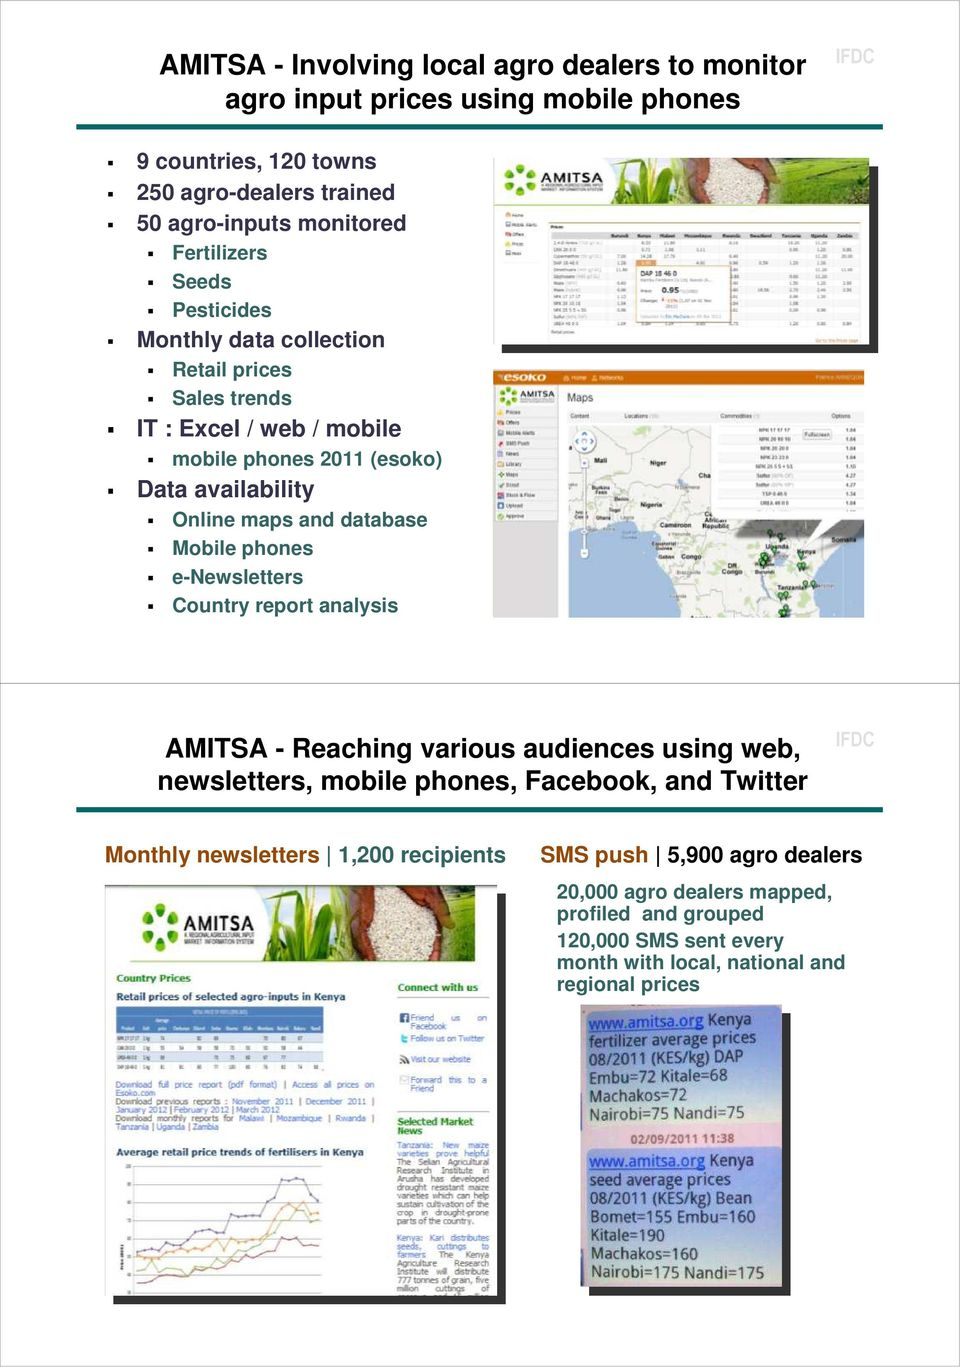 database Mobile phones e-newsletters Country report analysis AMITSA - Reaching various audiences using web, newsletters, mobile phones, Facebook, and Twitter Monthly